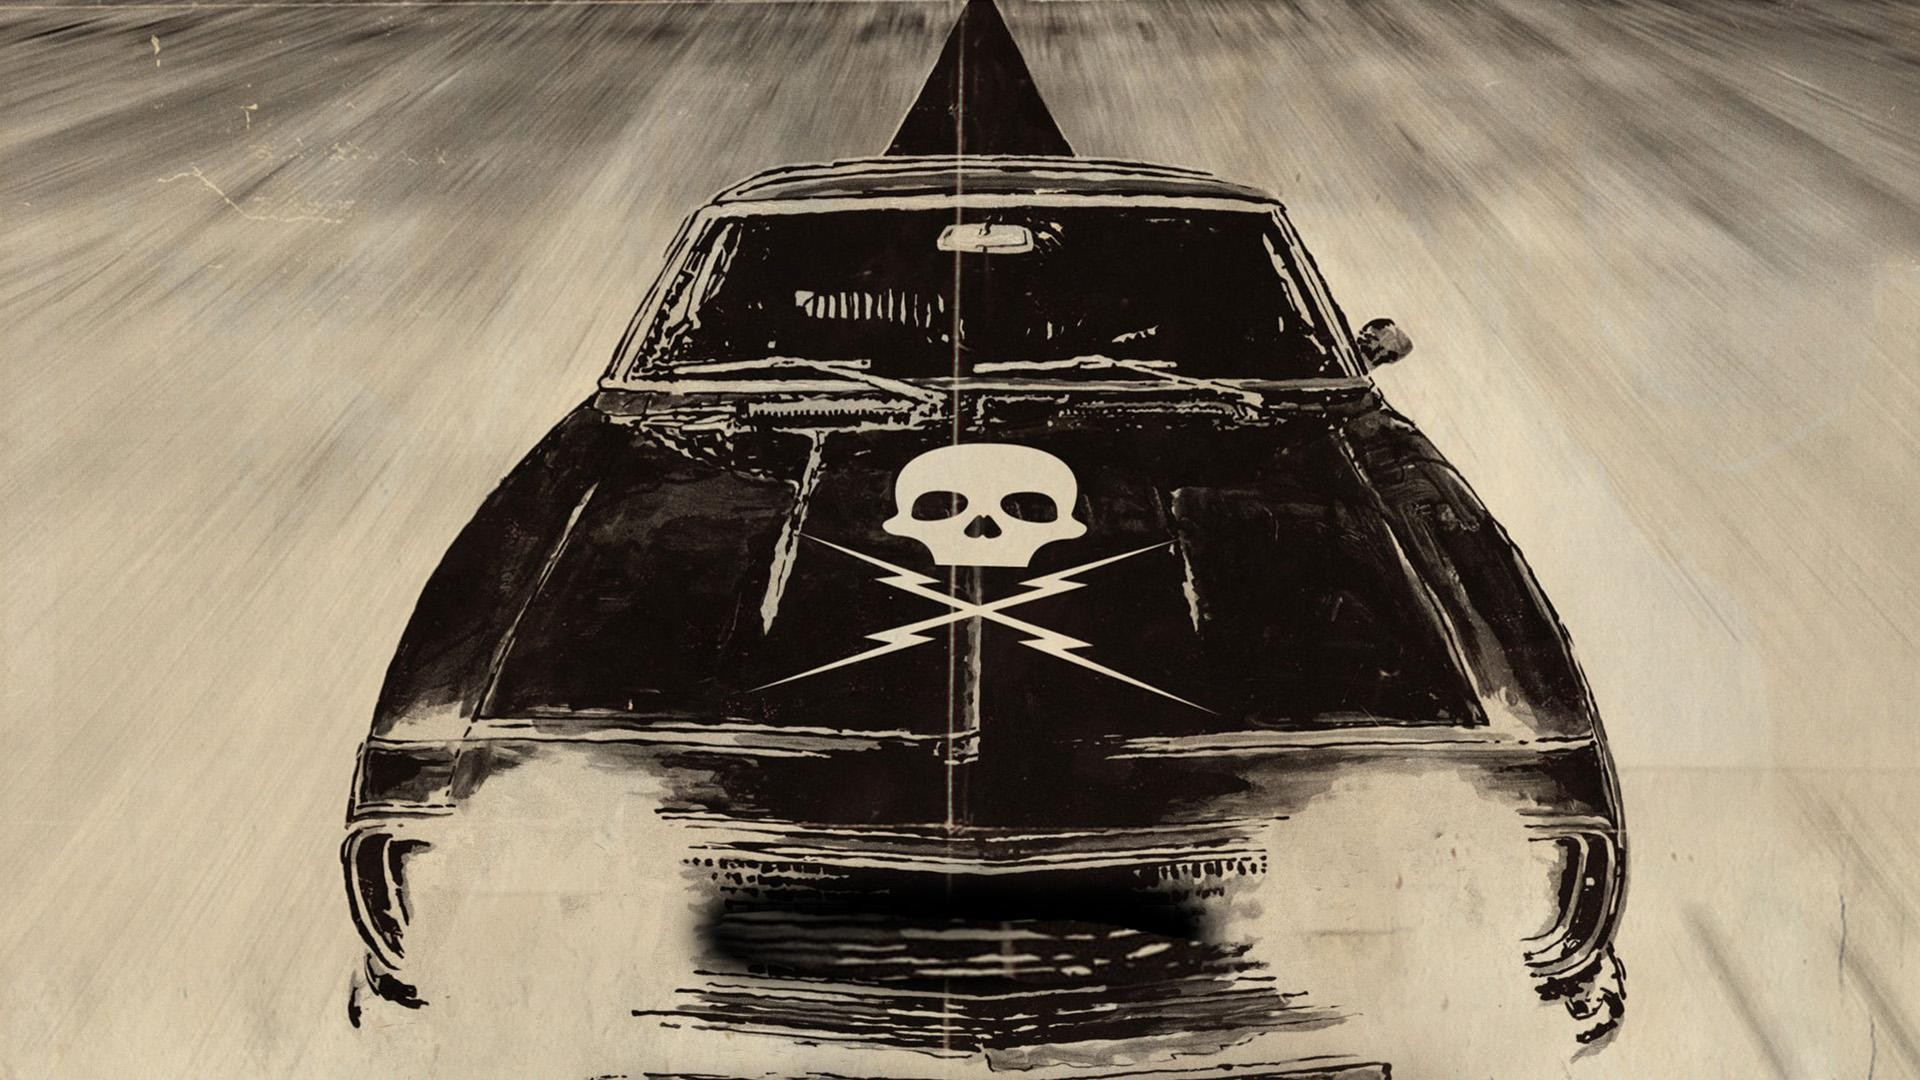 skull, Car, Muscle Cars, Grindhouse Wallpapers HD ...